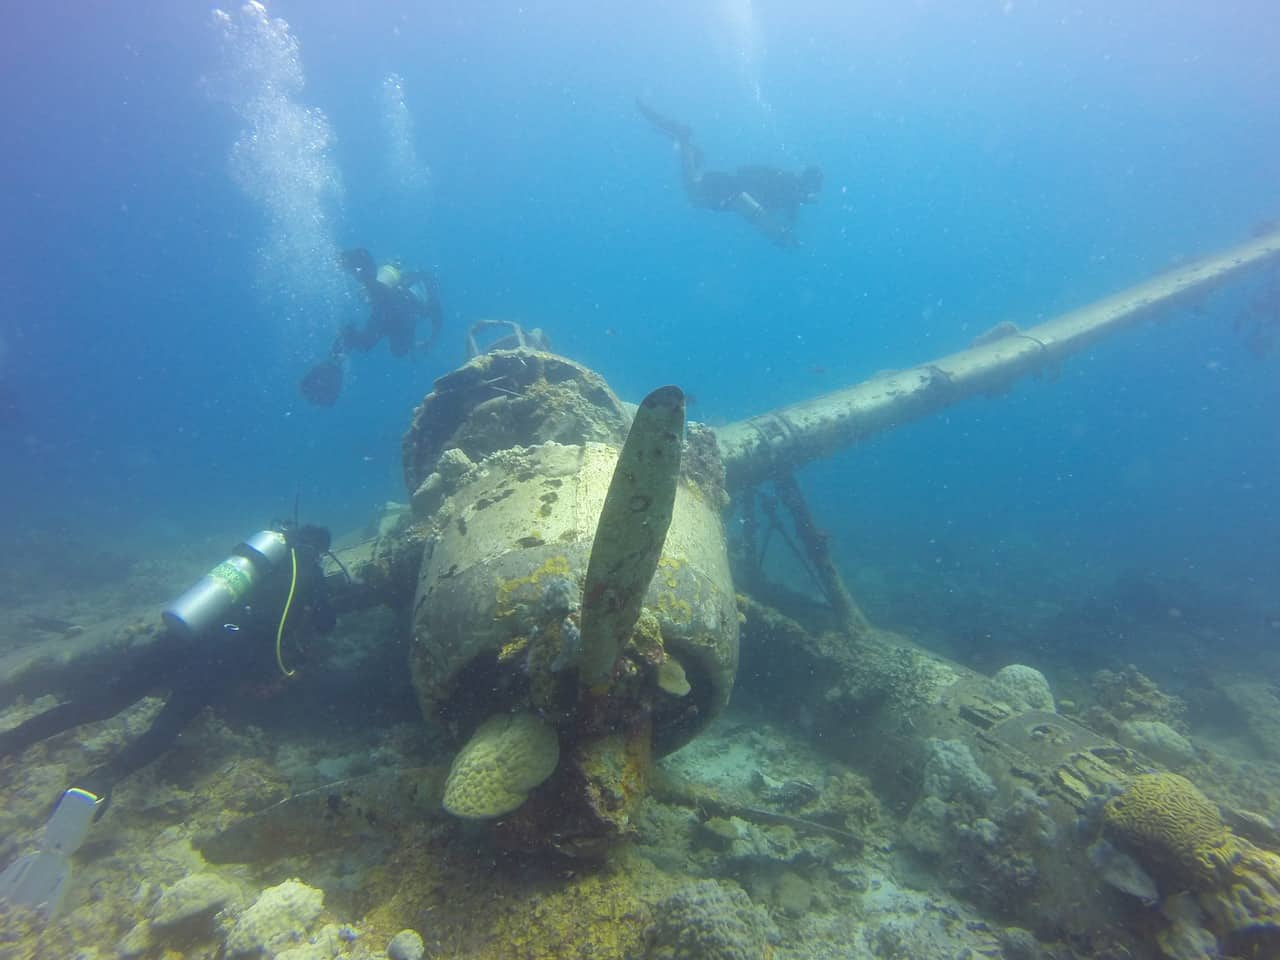 Photo of a underwater wreckage